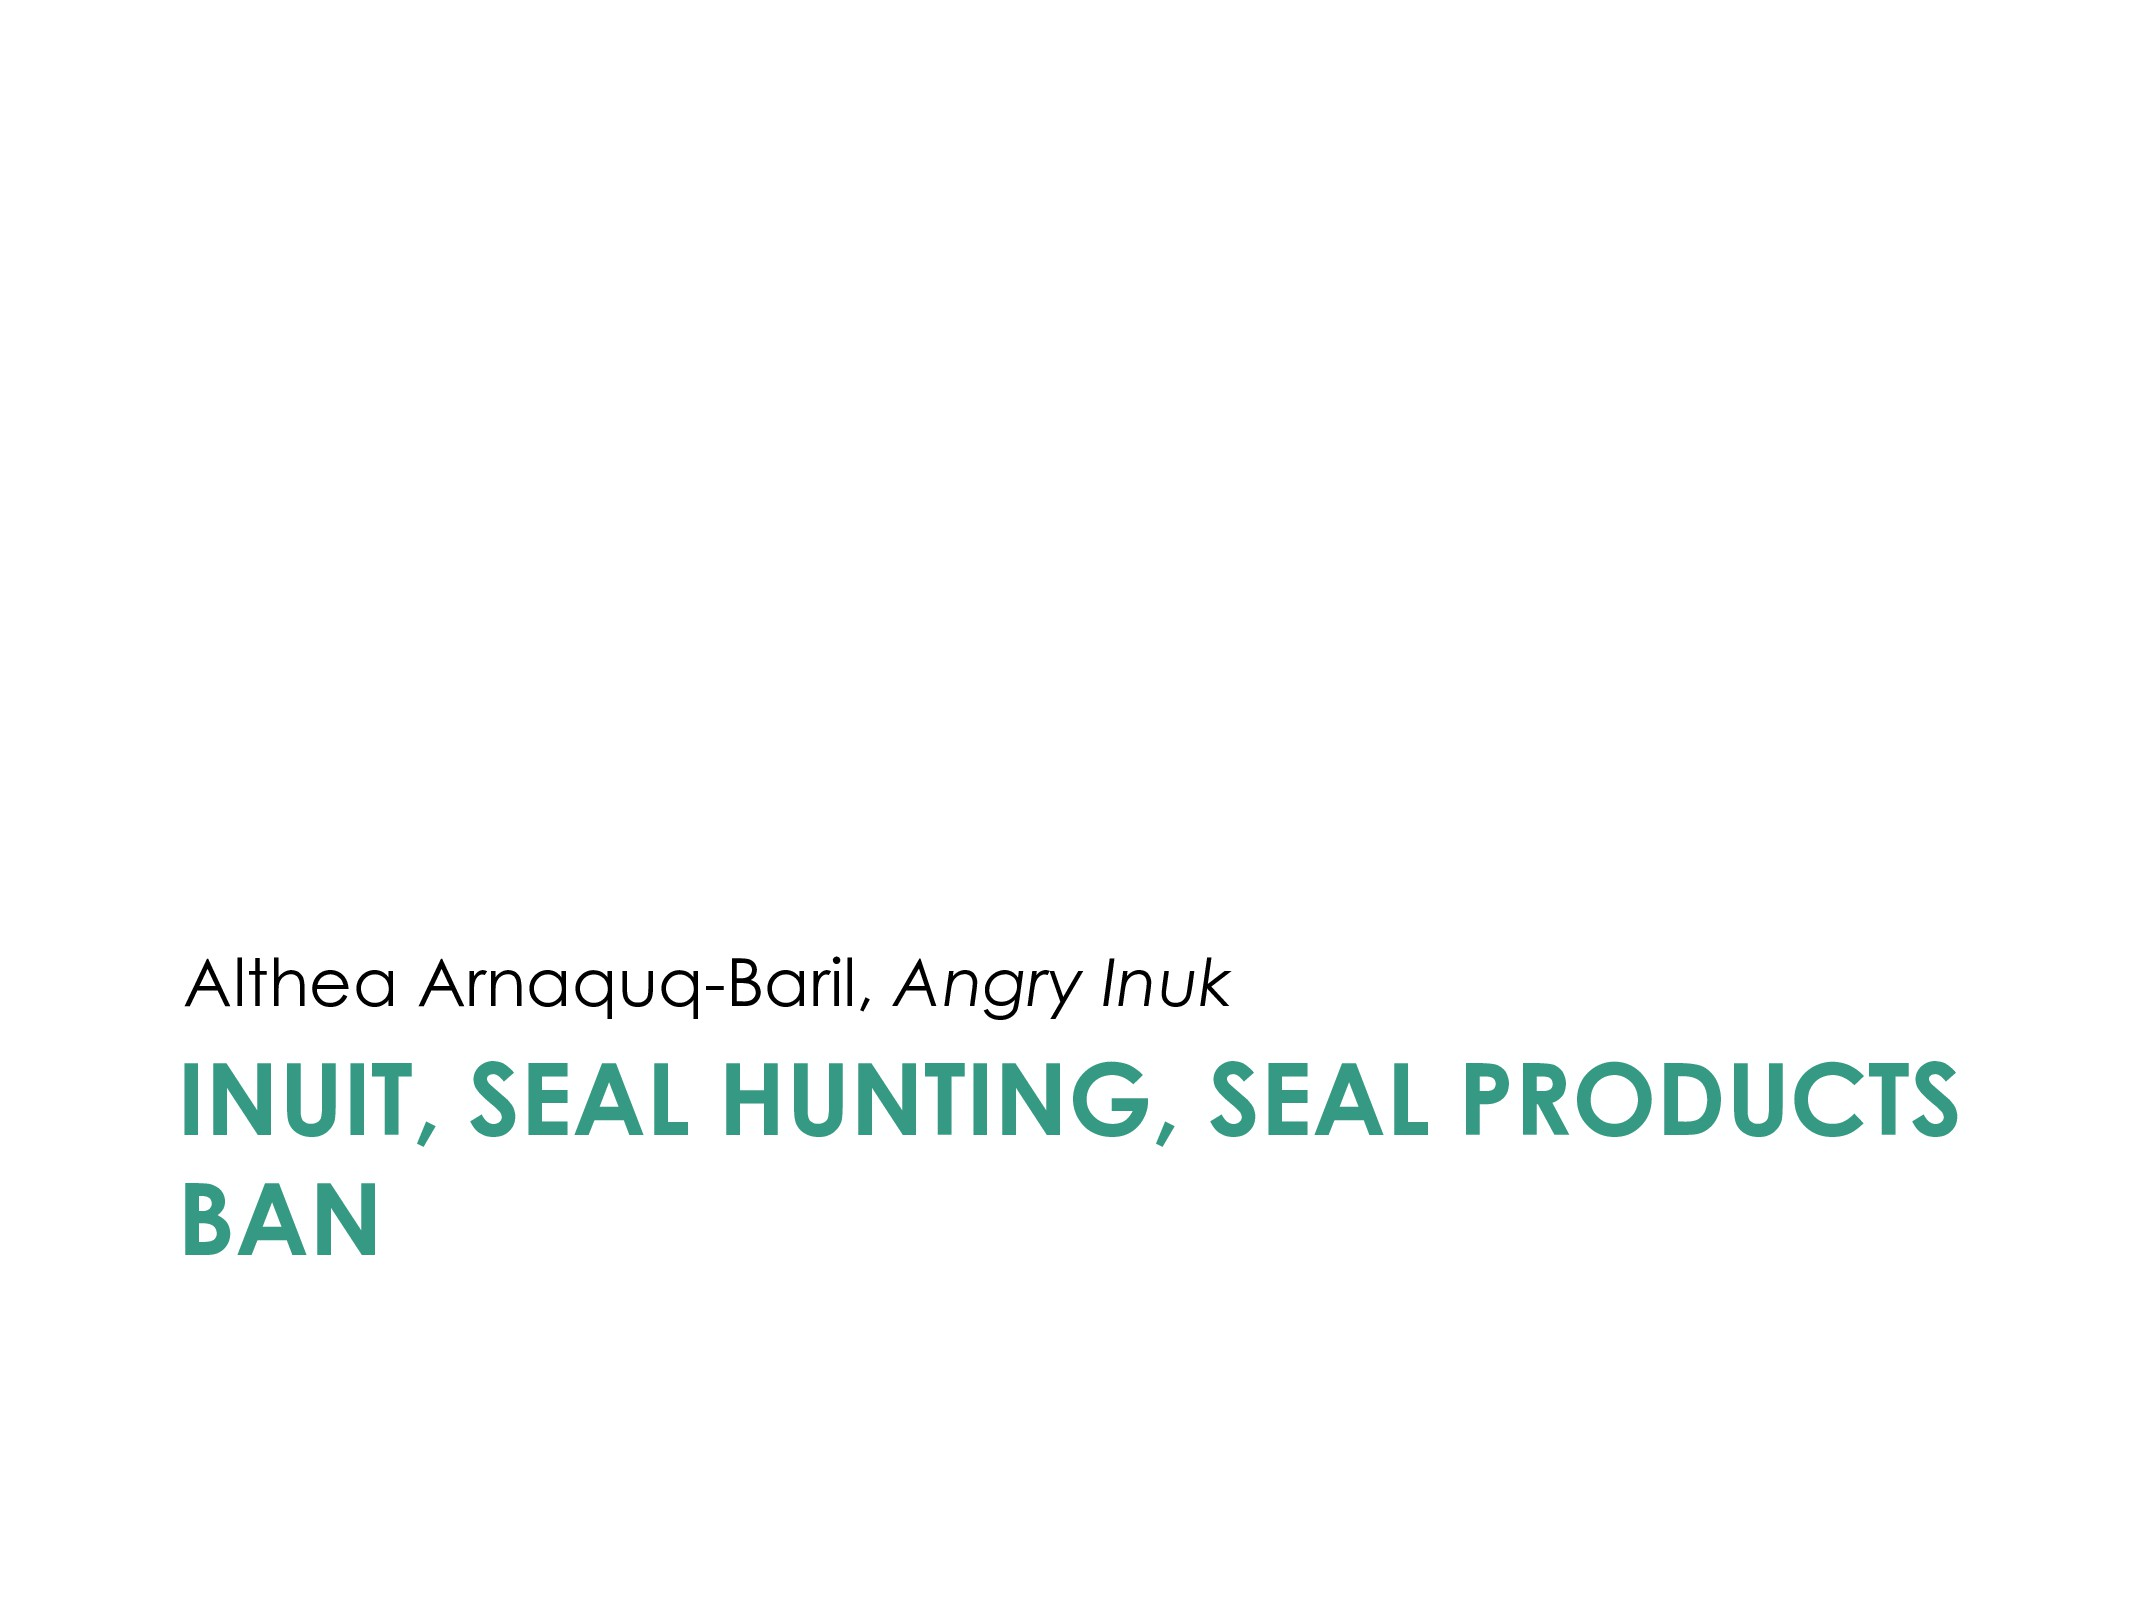 INUIT, SEAL HUNTING, SEAL PRODUCTS BAN Althea A...